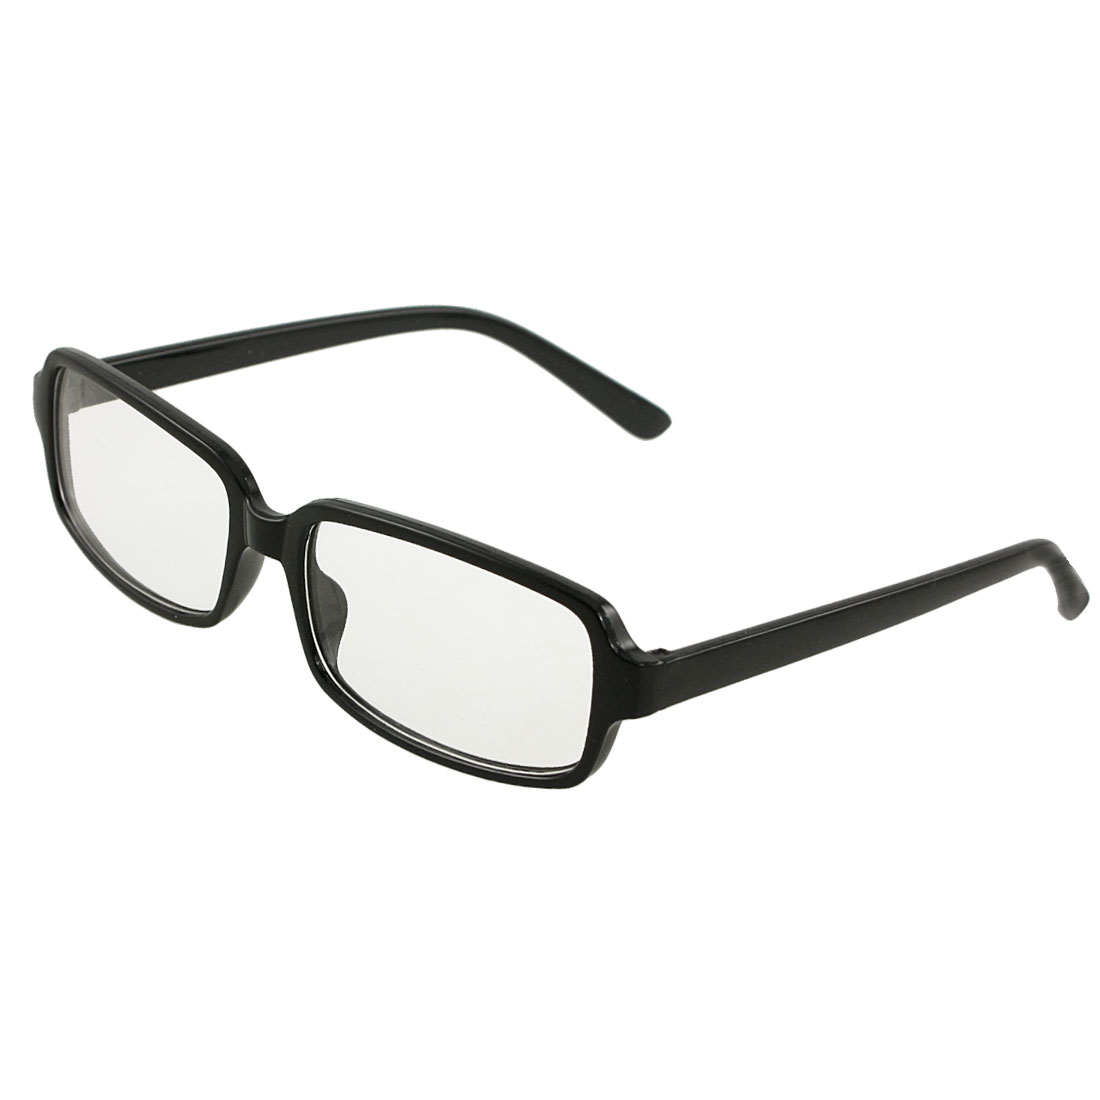 Unisex Black Plastic Full Frame Clear Lens Plain Eyewear Eyeglasses